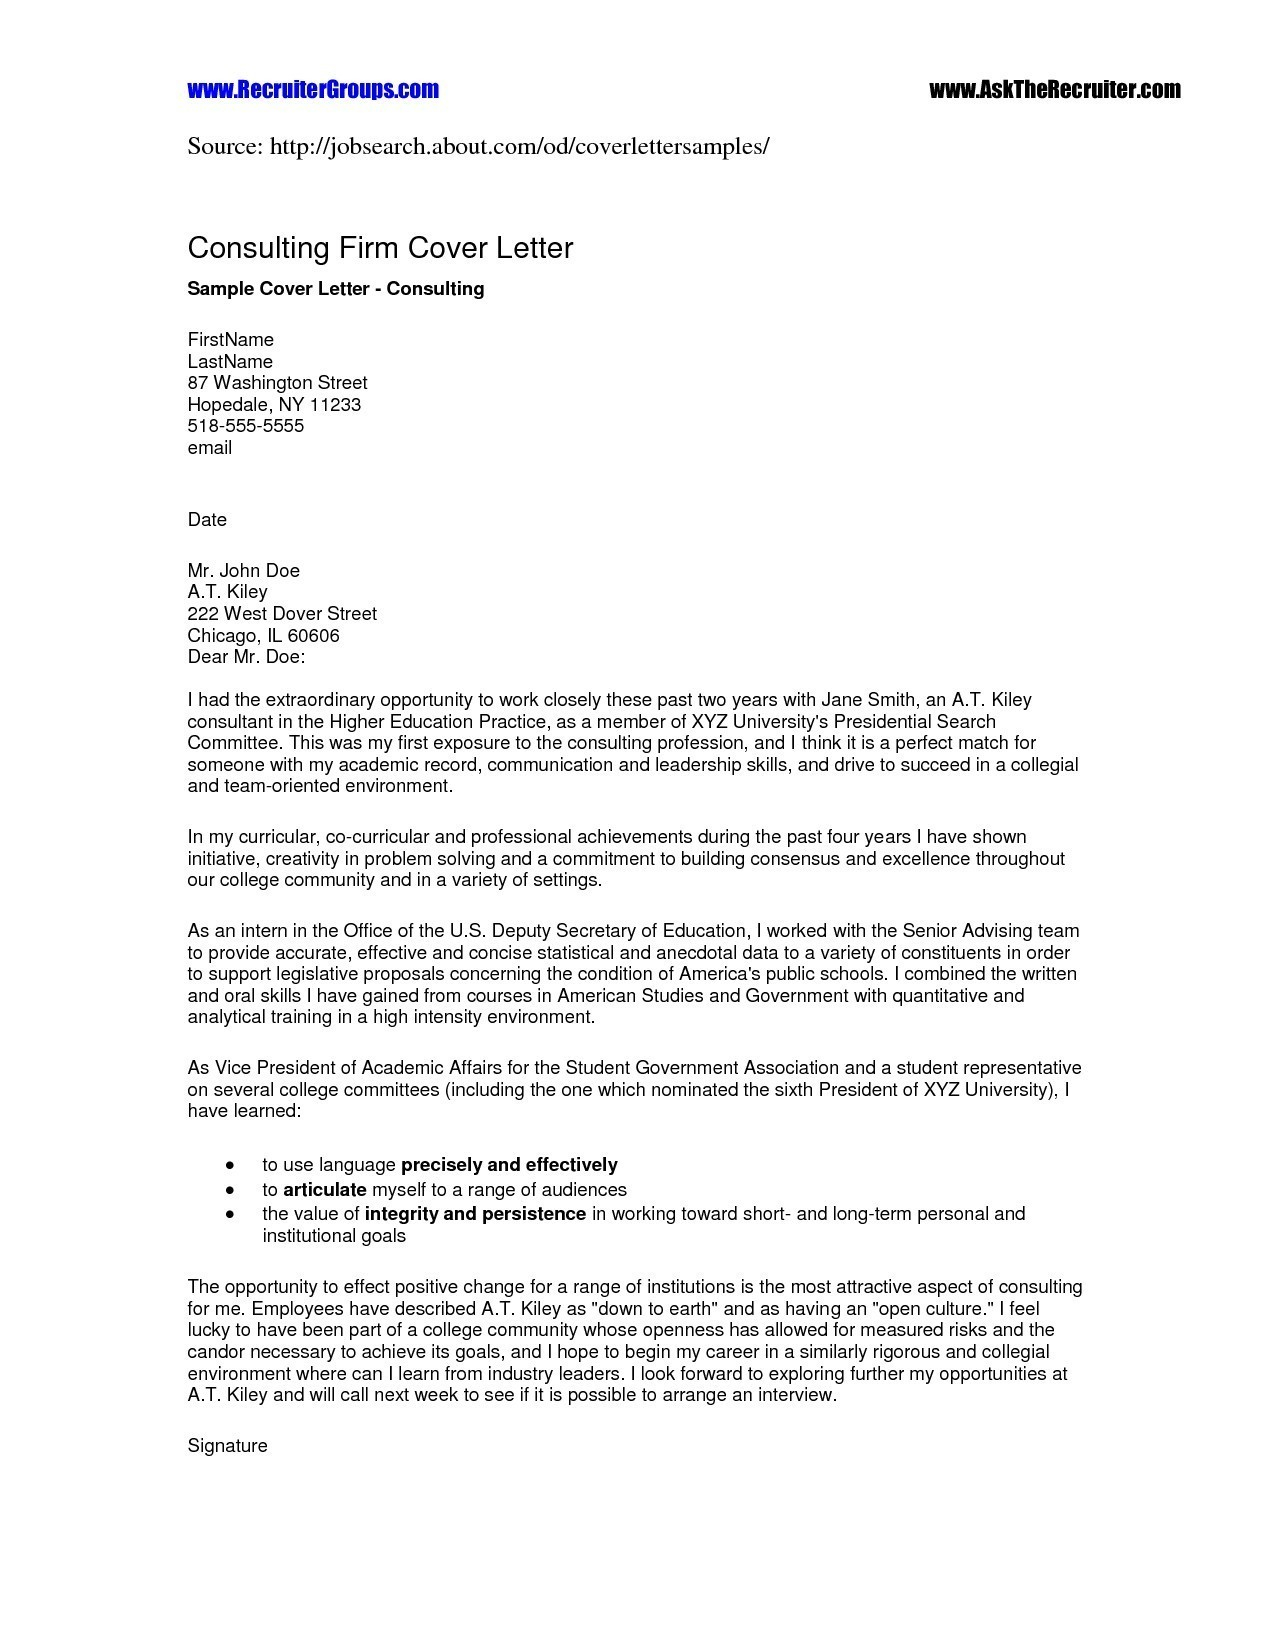 Business Demand Letter Template - Cover Letter Samples for Environmental Jobs Copy Business Letter